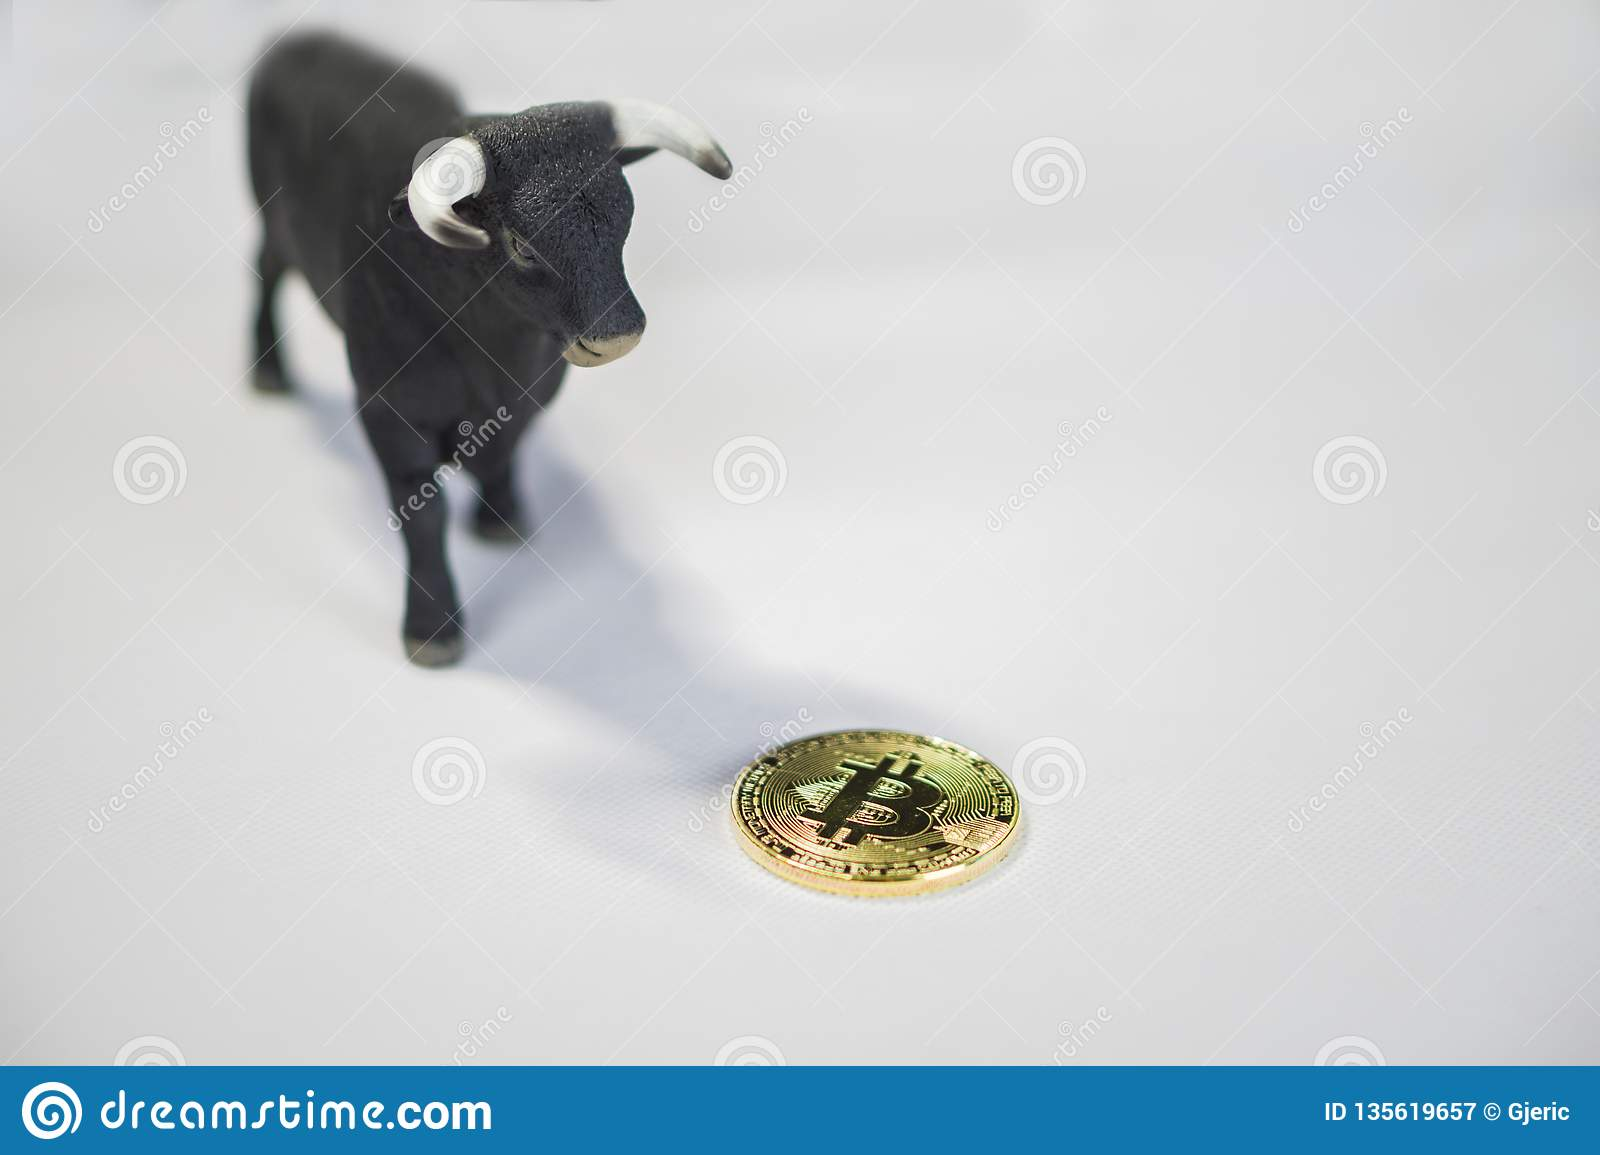 goat coin cryptocurrency